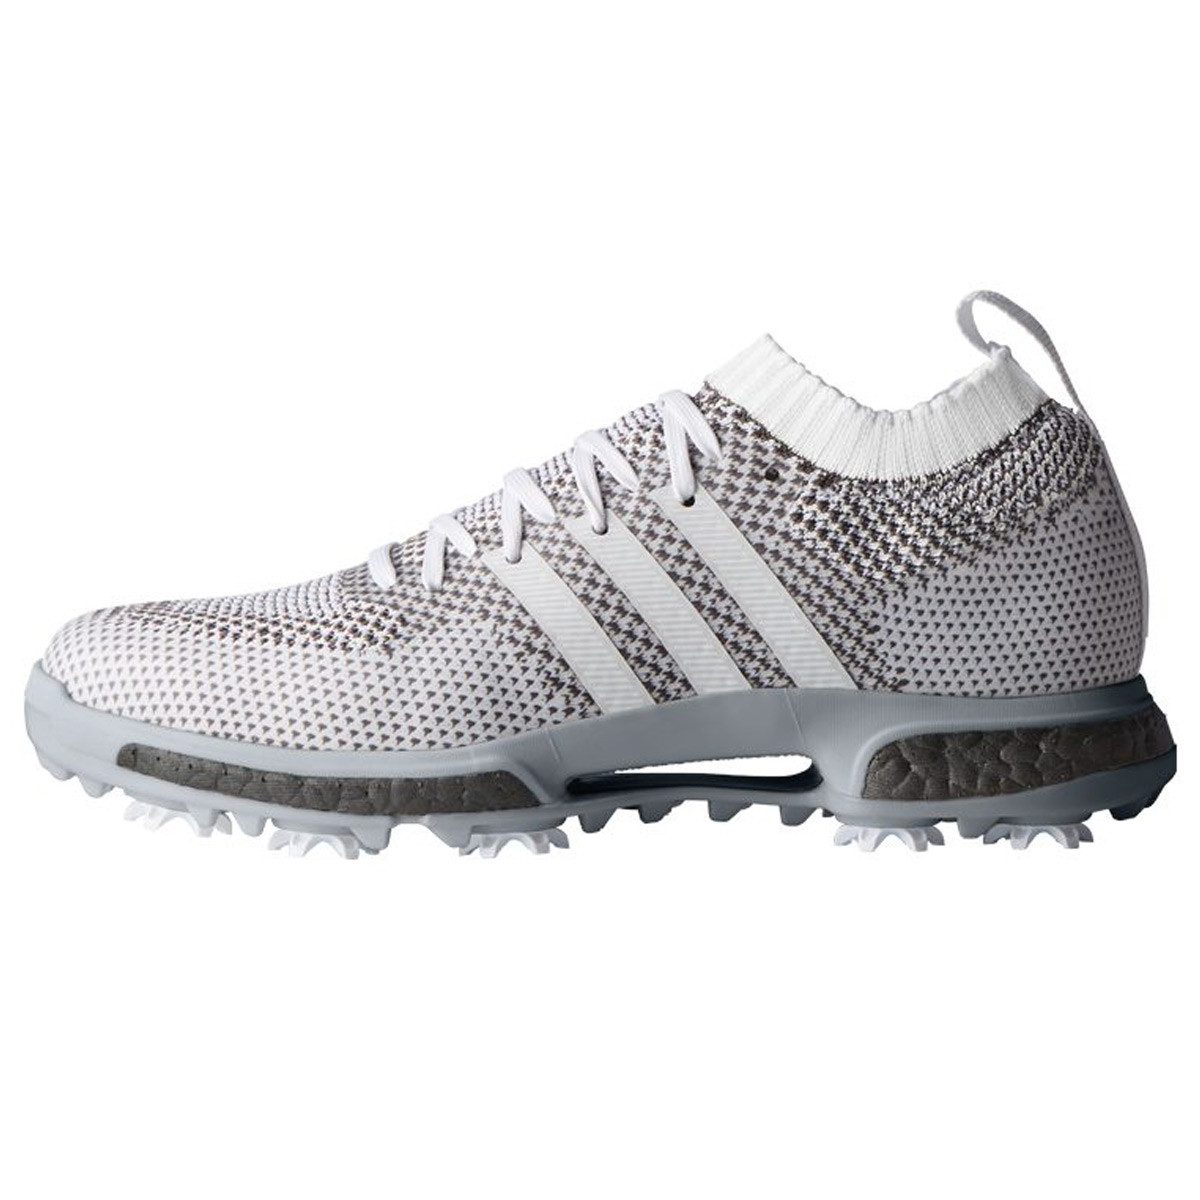 buy popular 46b4f 3637b adidas Golf Mens Tour 360 Knit Golf Shoes